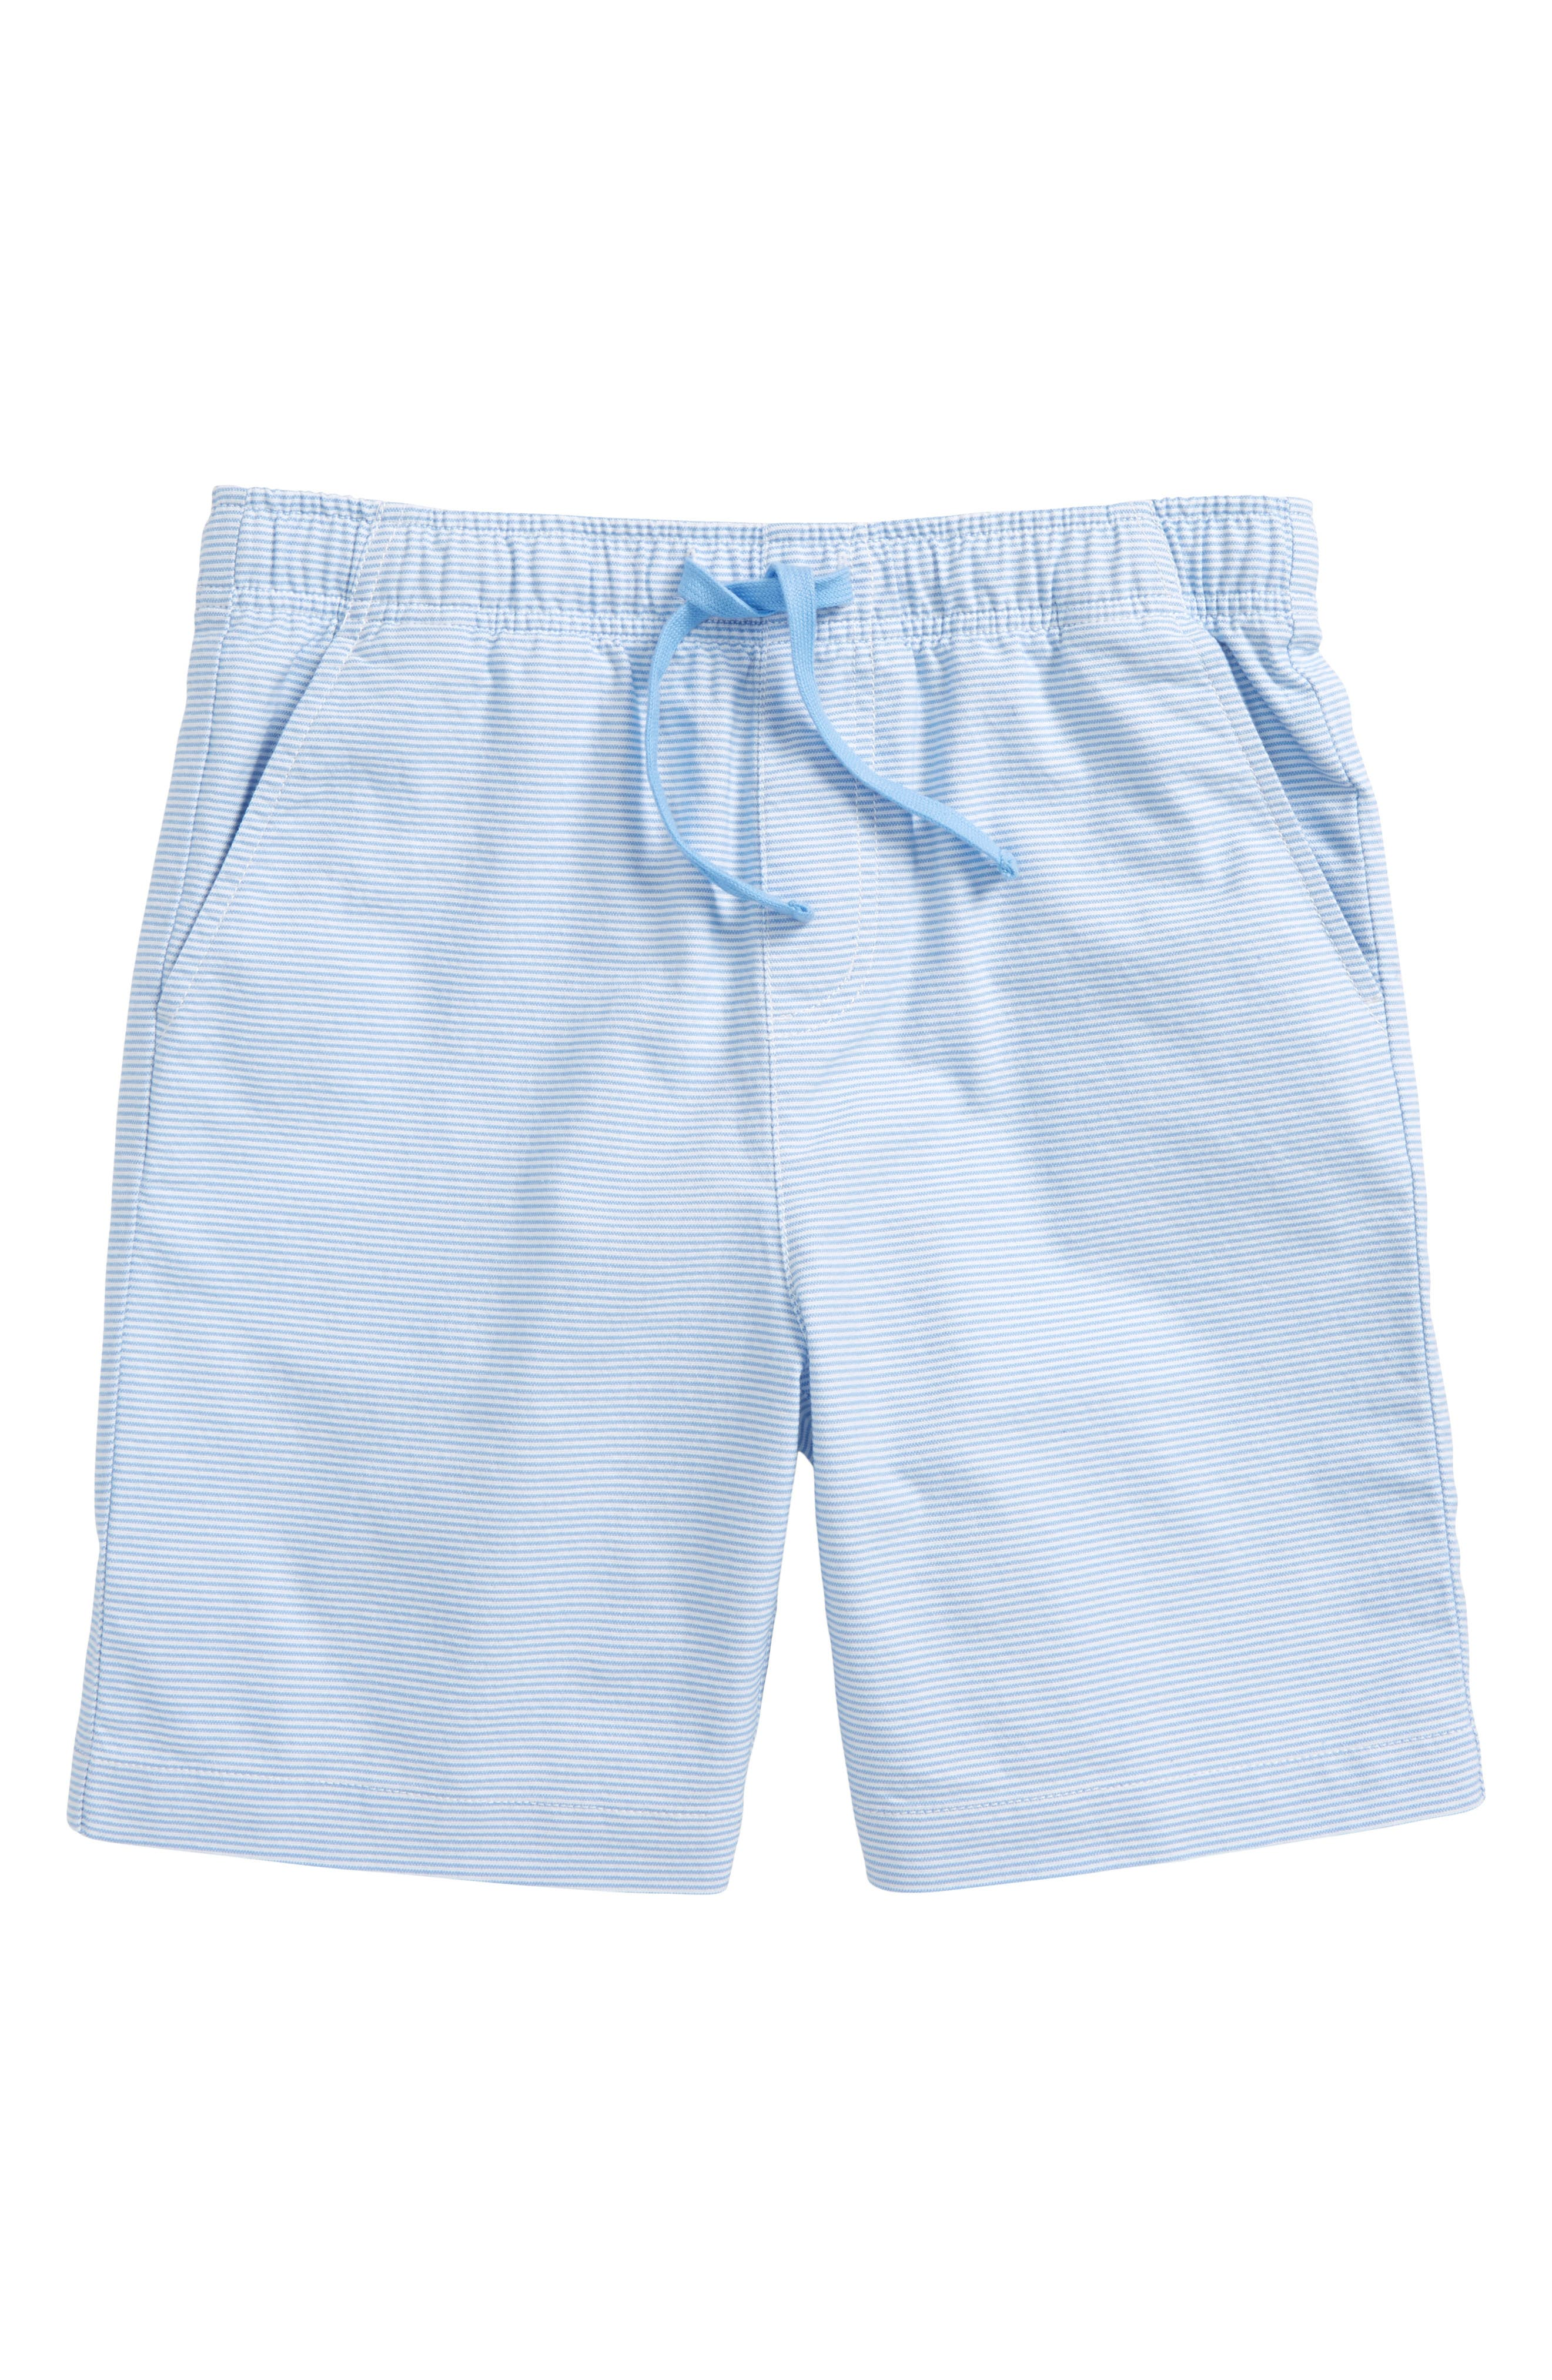 Oxford Stripe Jetty Shorts,                             Main thumbnail 1, color,                             Ocean Breeze